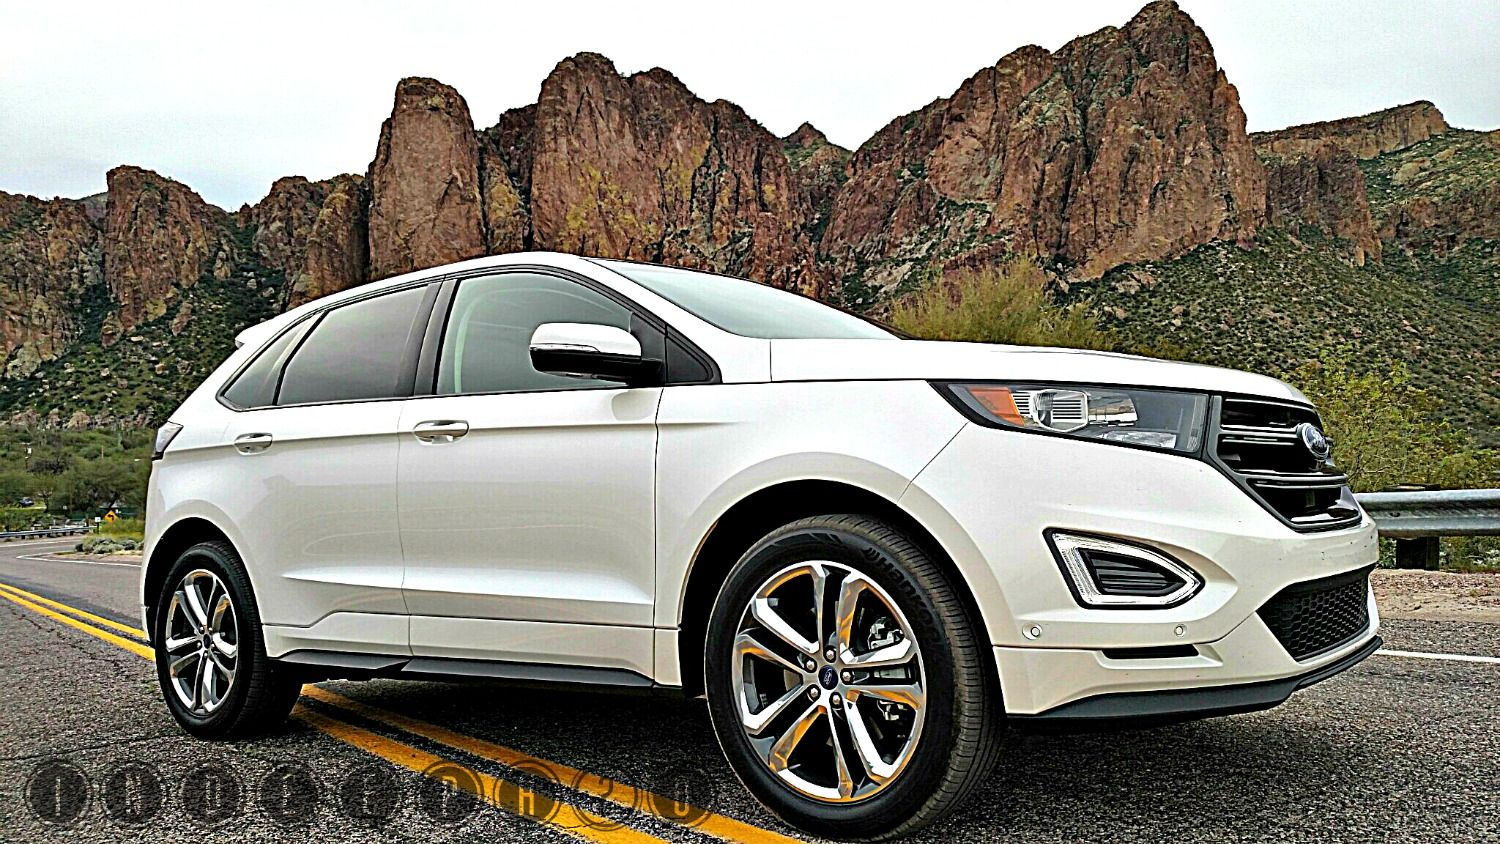 2015 Ford Edge Cranks Up The Heat At W Scottsdale Ford Edge